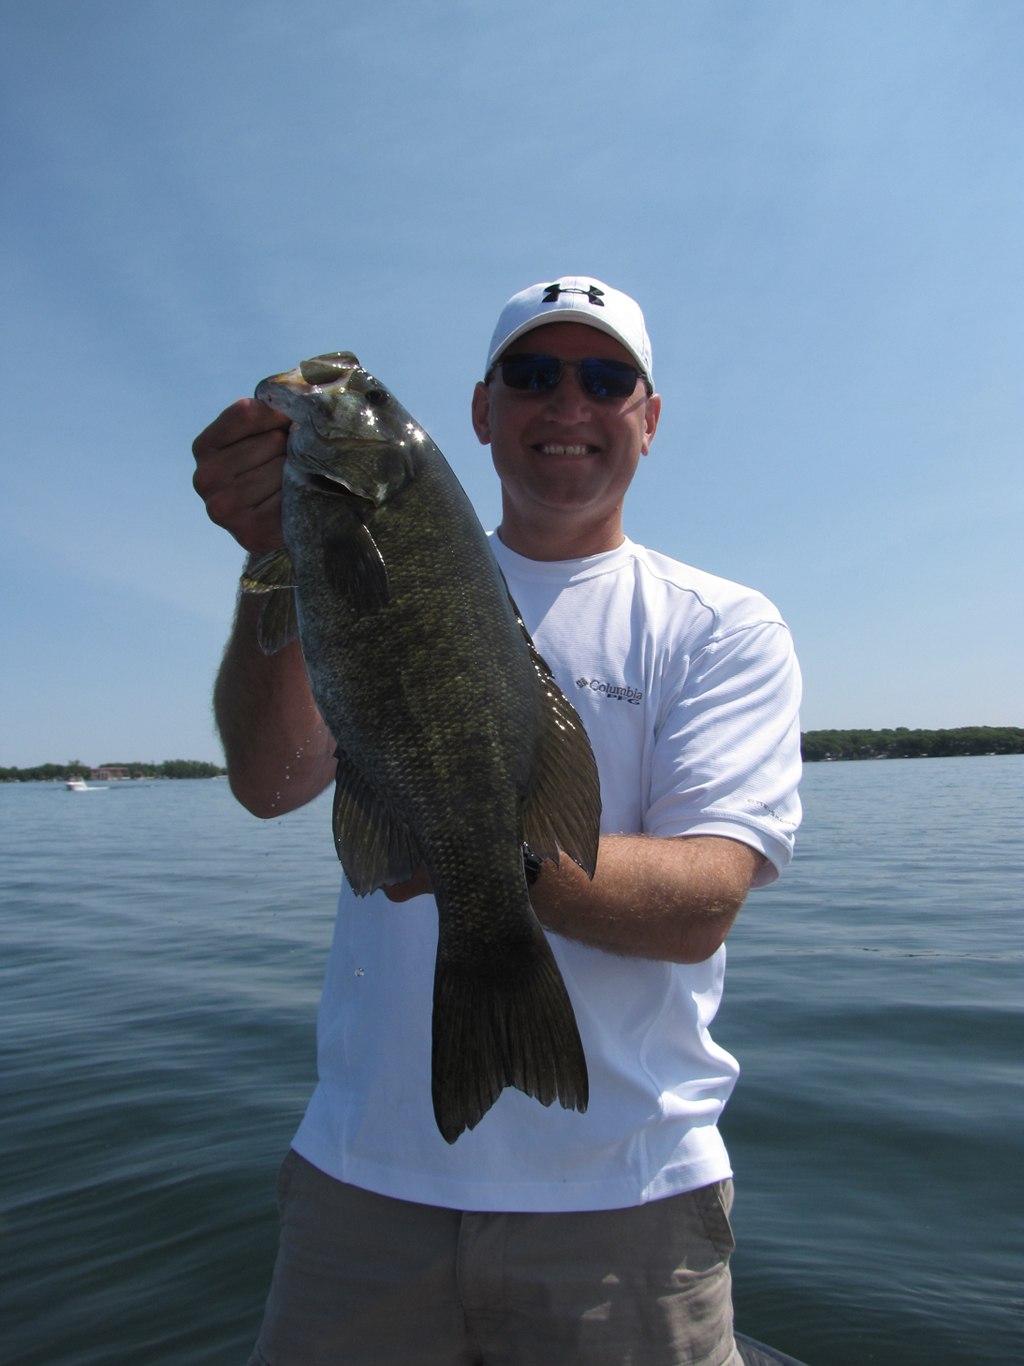 Best bets for iowa fishing in 2012 game fish page 2 for Iowa fishing lakes